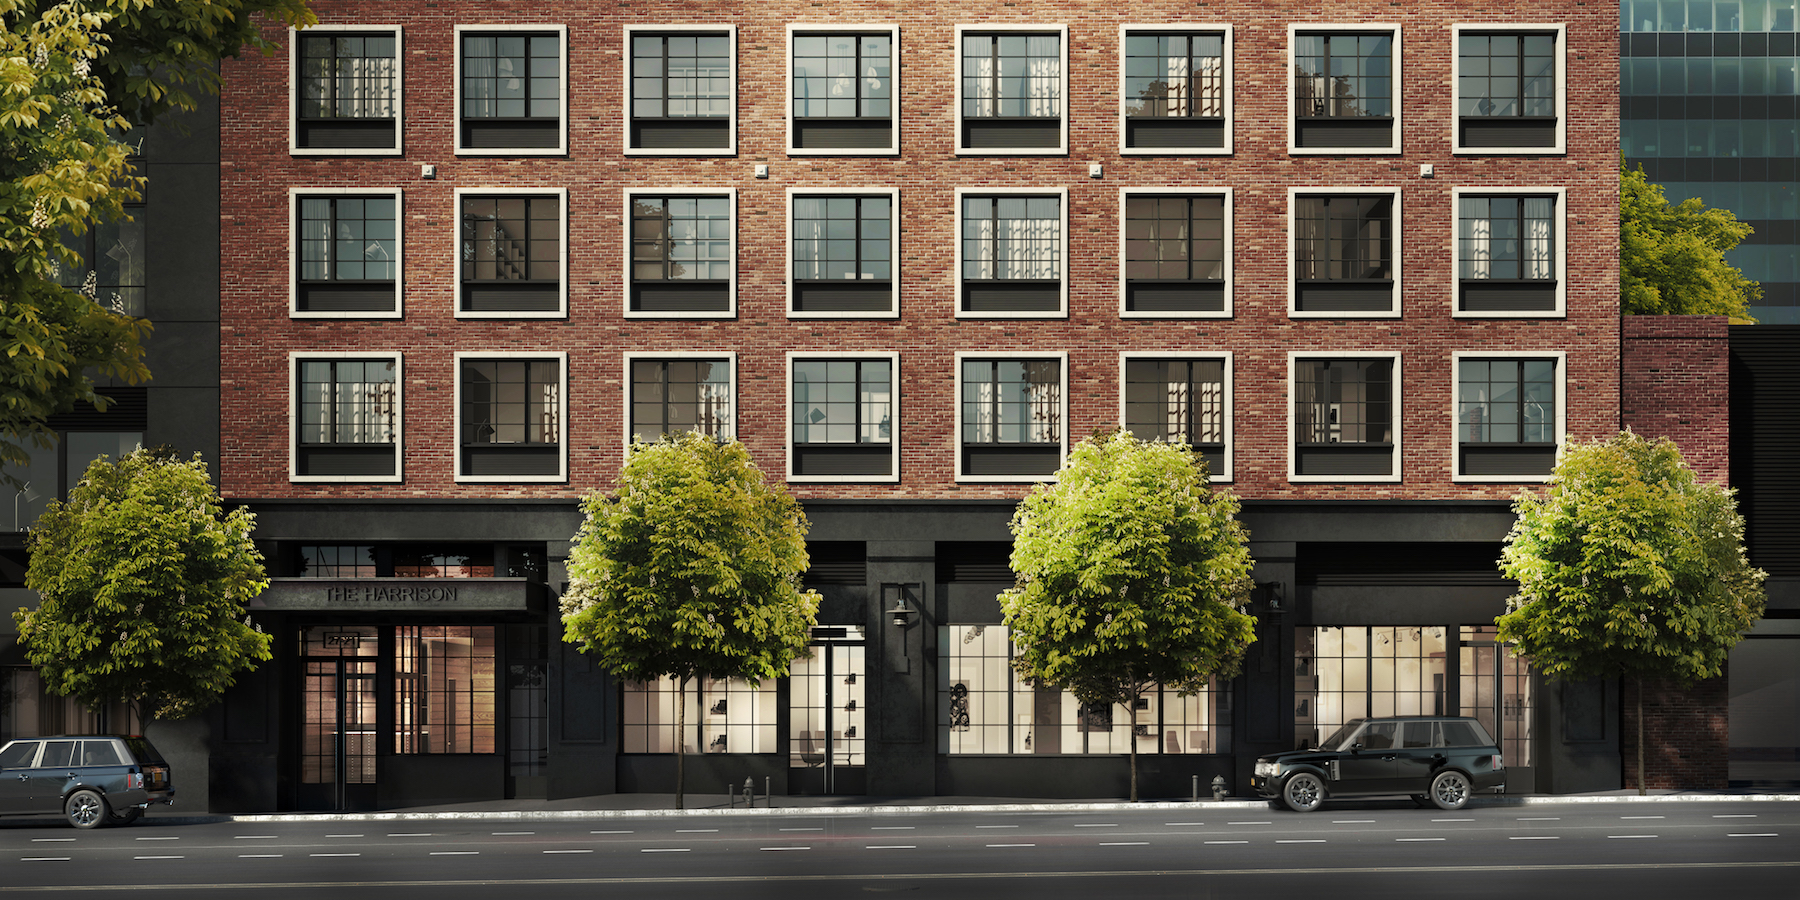 The Harrison, at 27-21 44th Drive in Long Island City (credit: Modern Spaces)